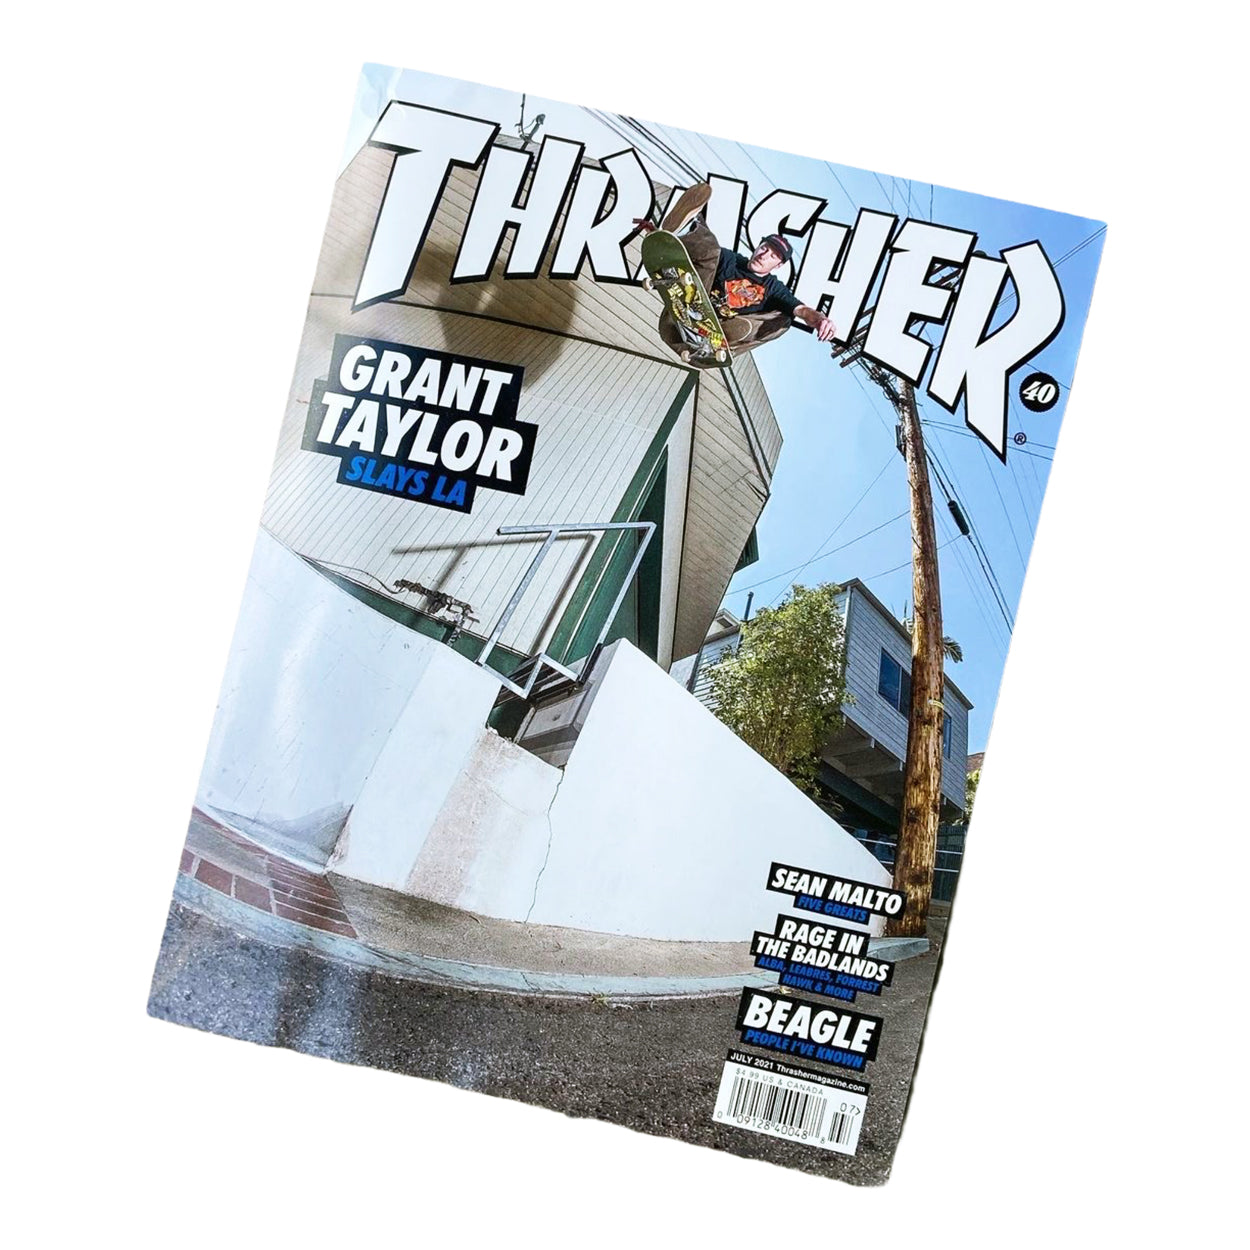 Thrasher Magazine July 2021 (Grant Taylor Slays LA)